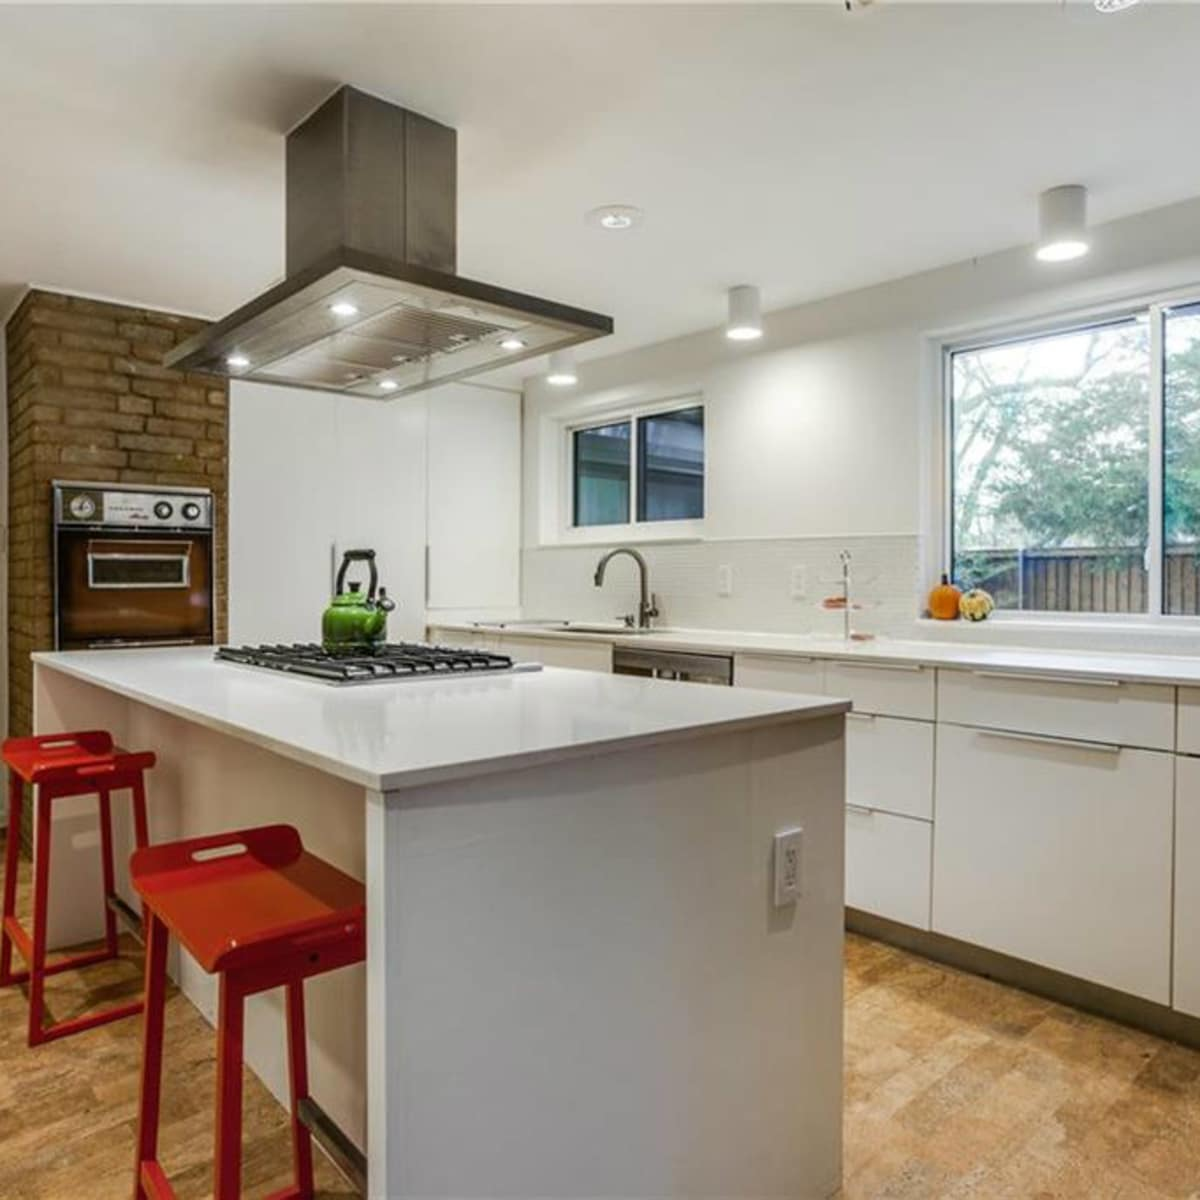 Lochwood Home for Sale